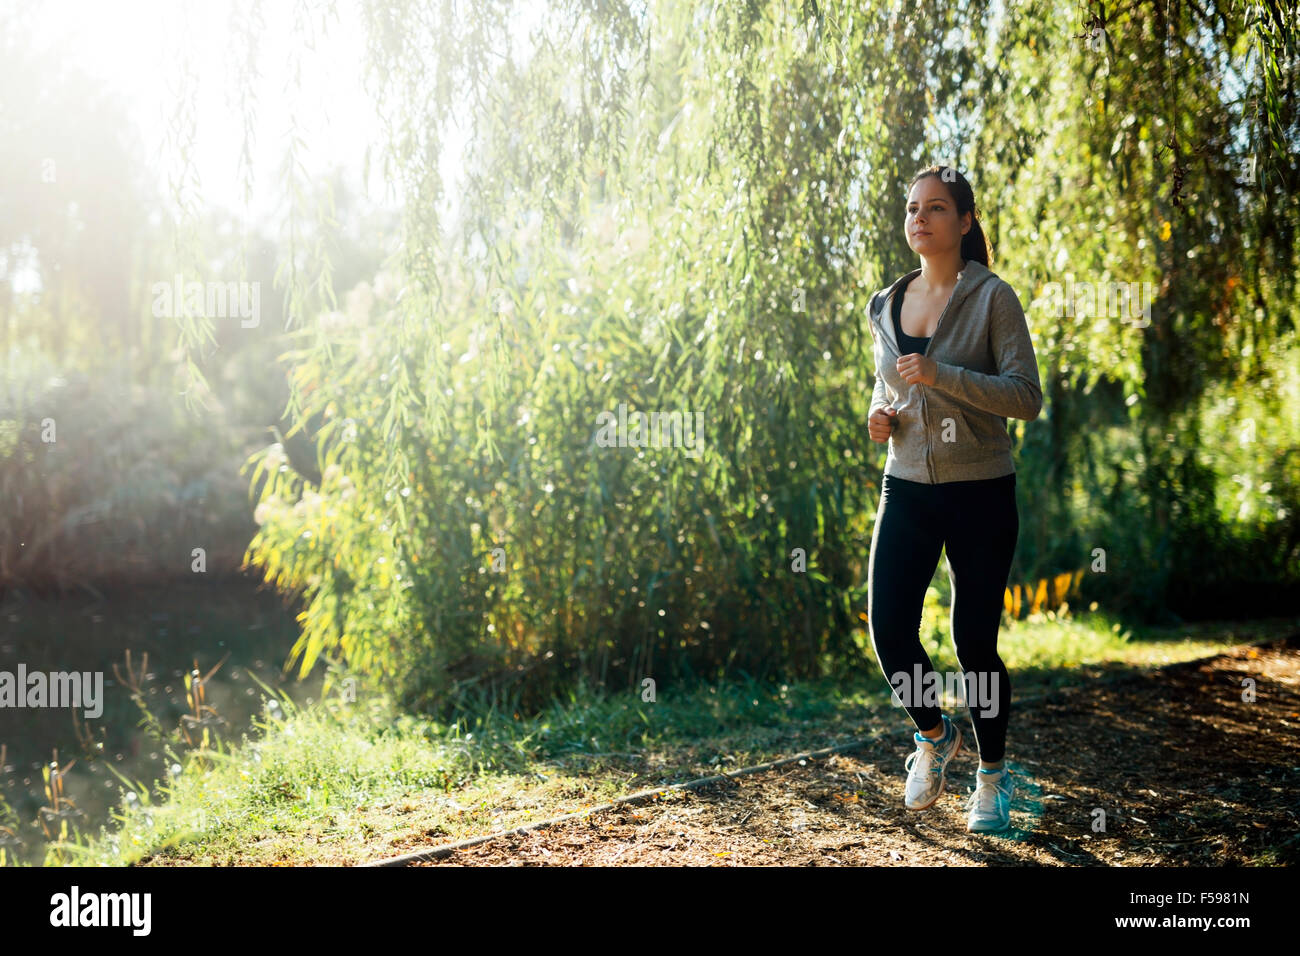 Sporty girl jogging in park close to a river - Stock Image